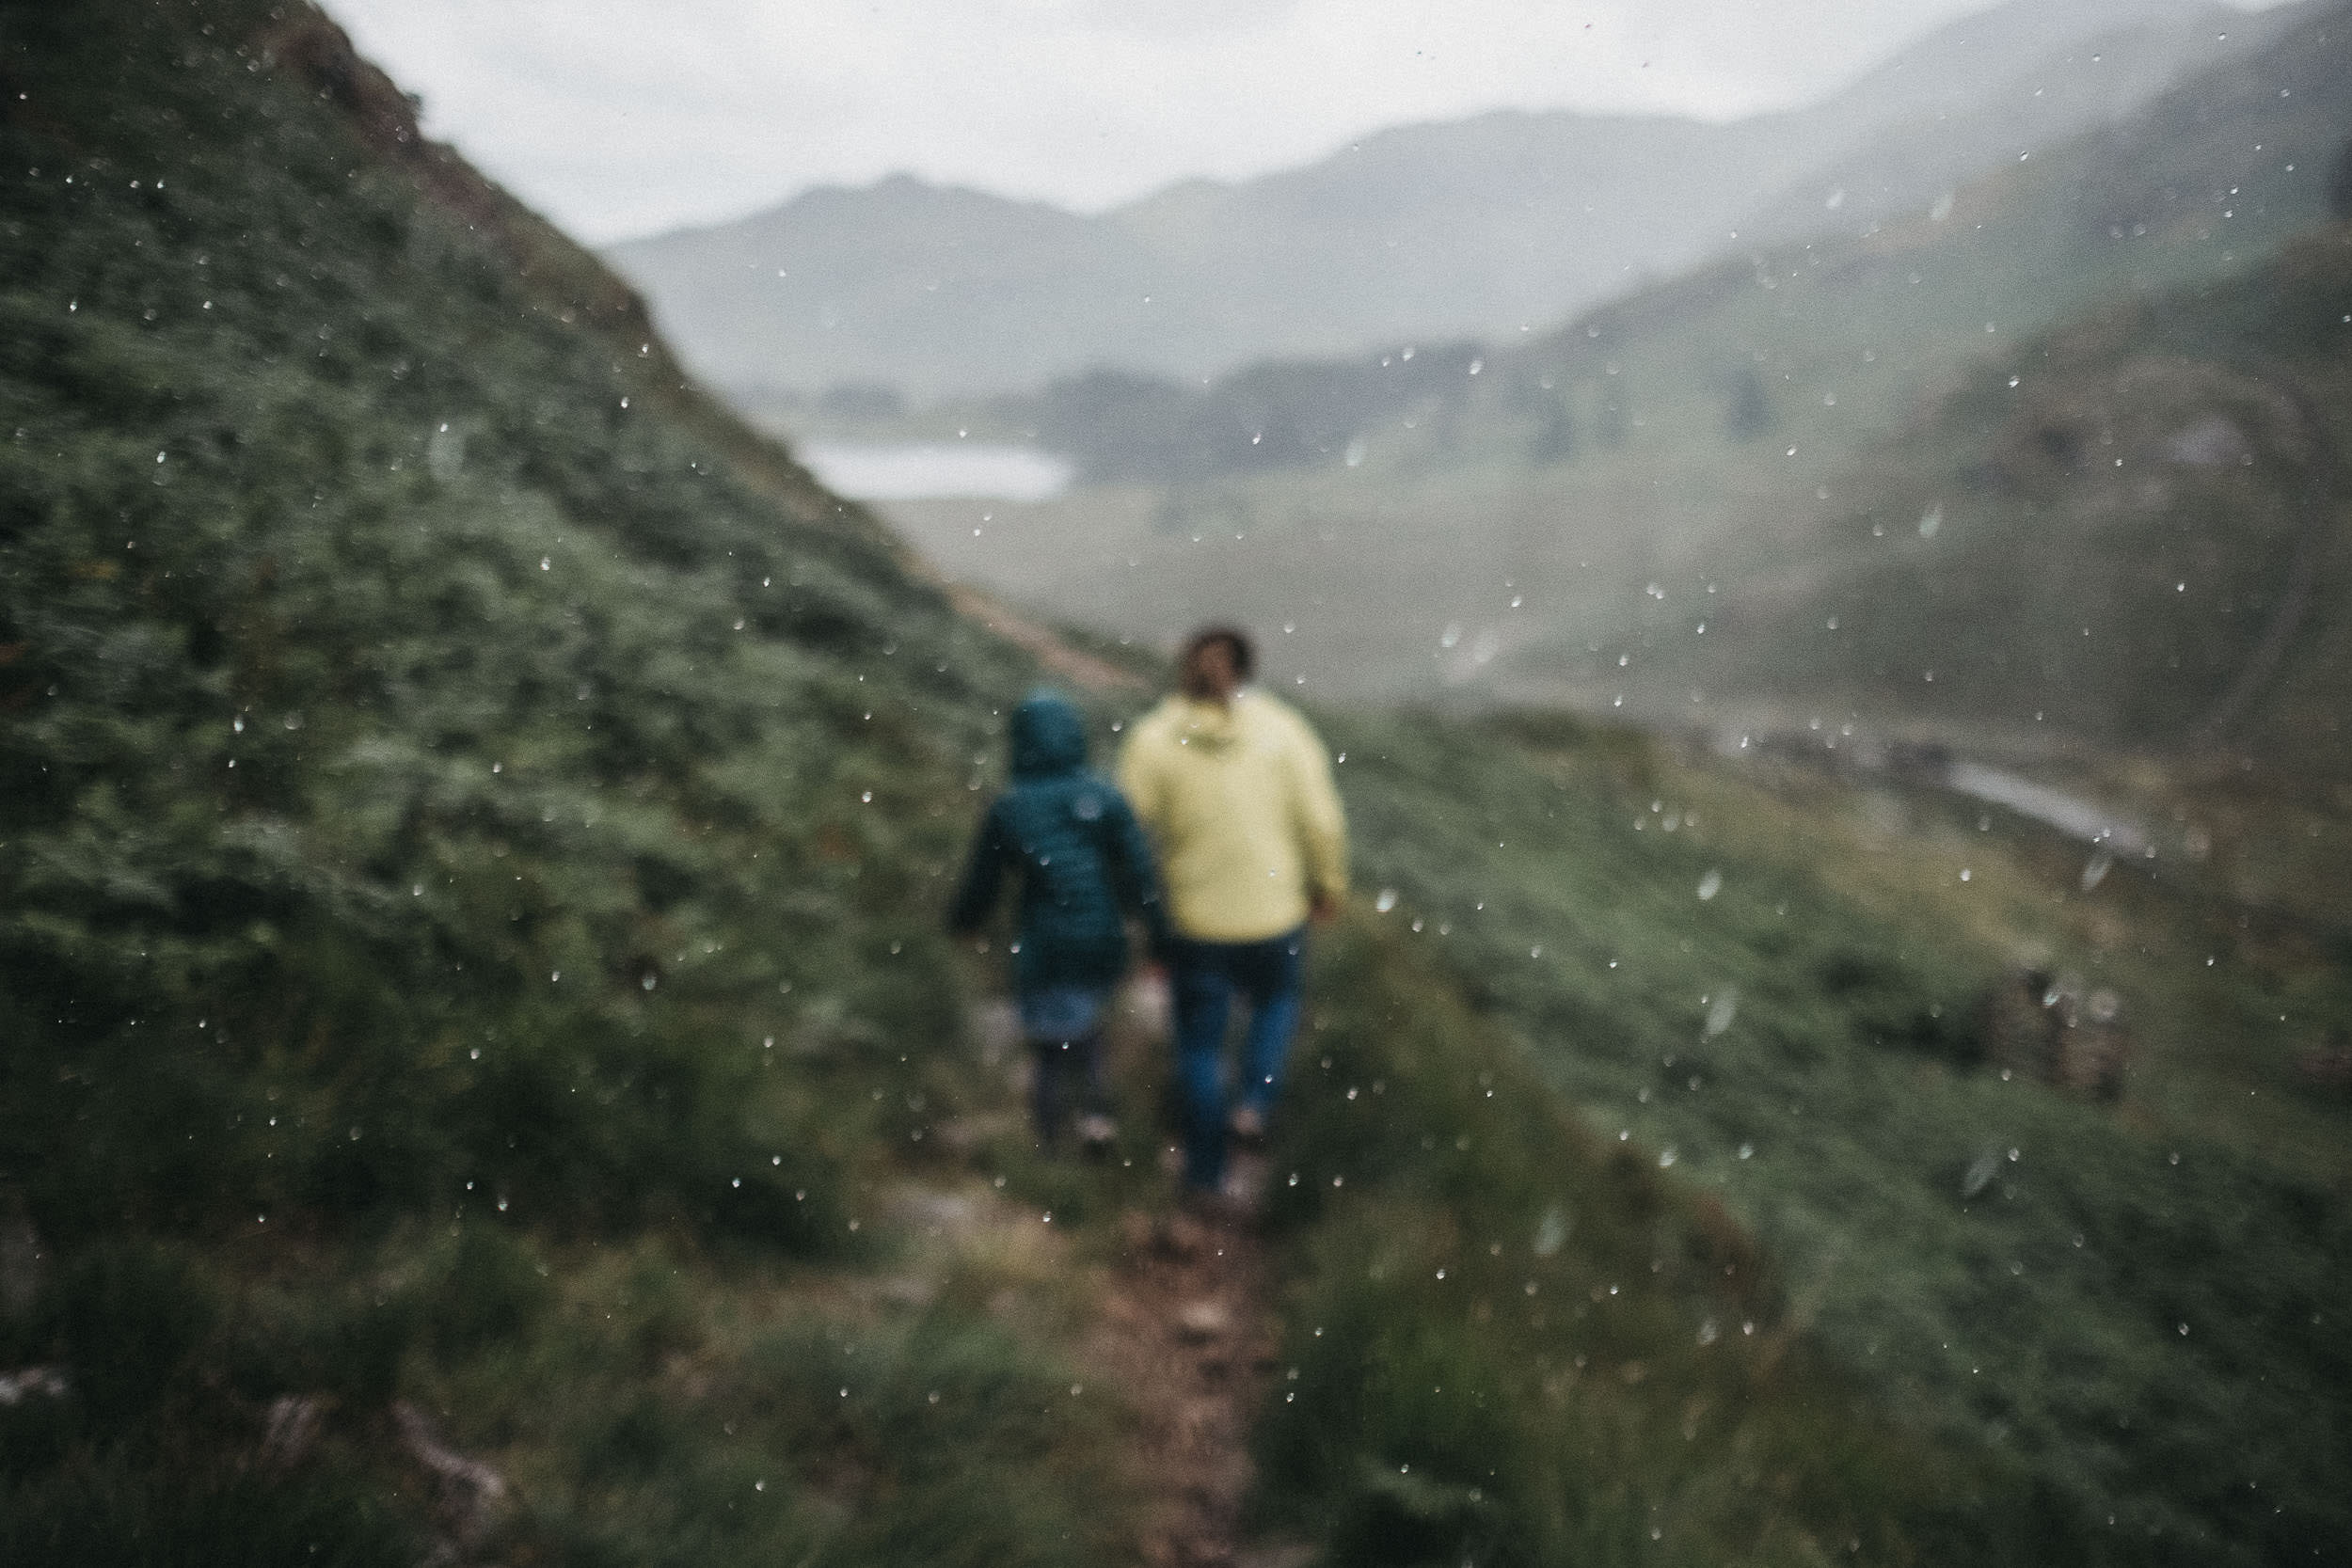 The rain pours down in the Lake District while an engaged couple walks down a fell trail